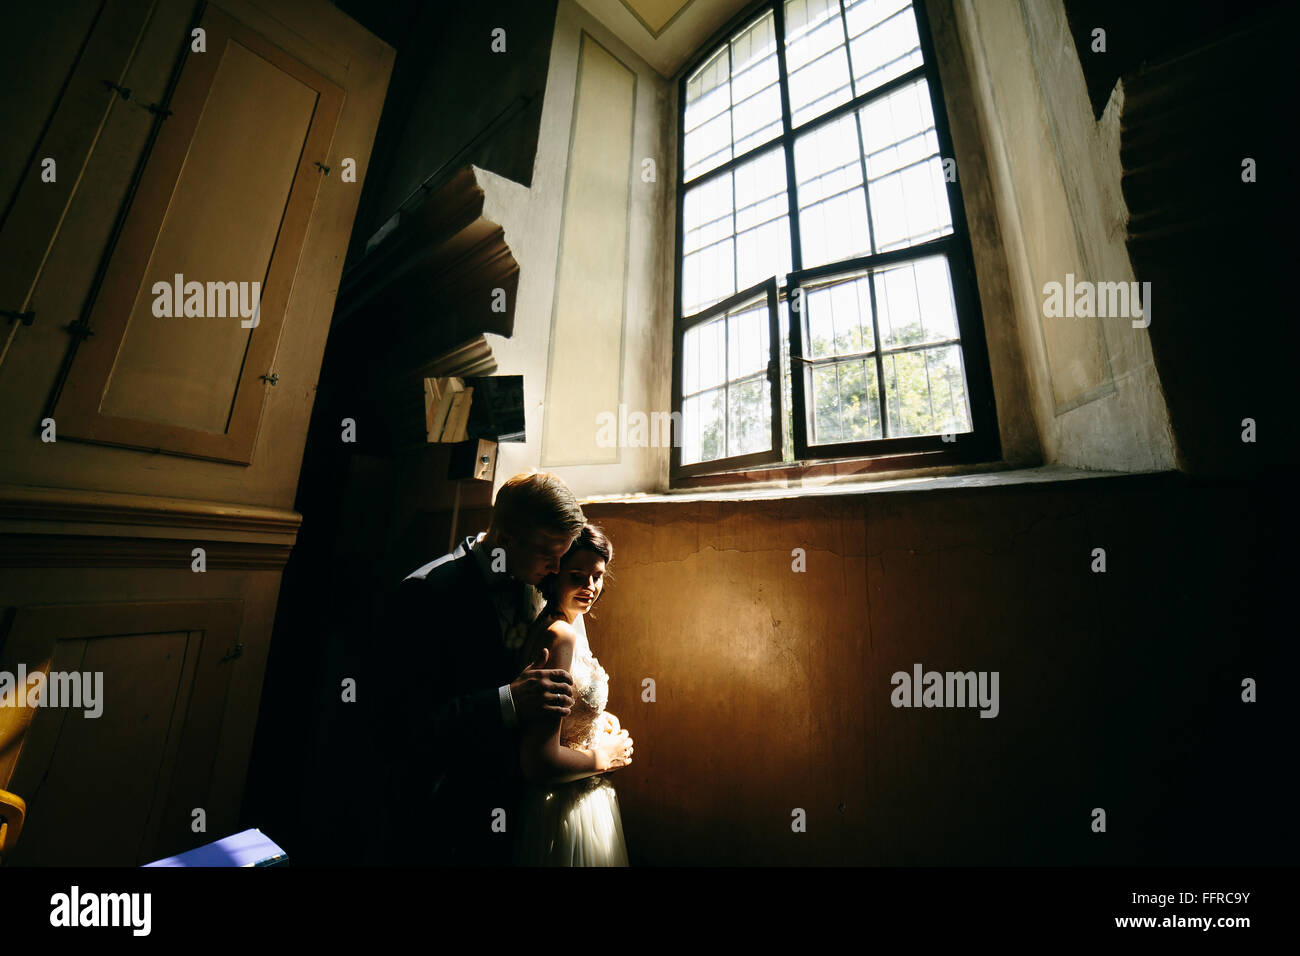 bride and groom on the background of a window. - Stock Image